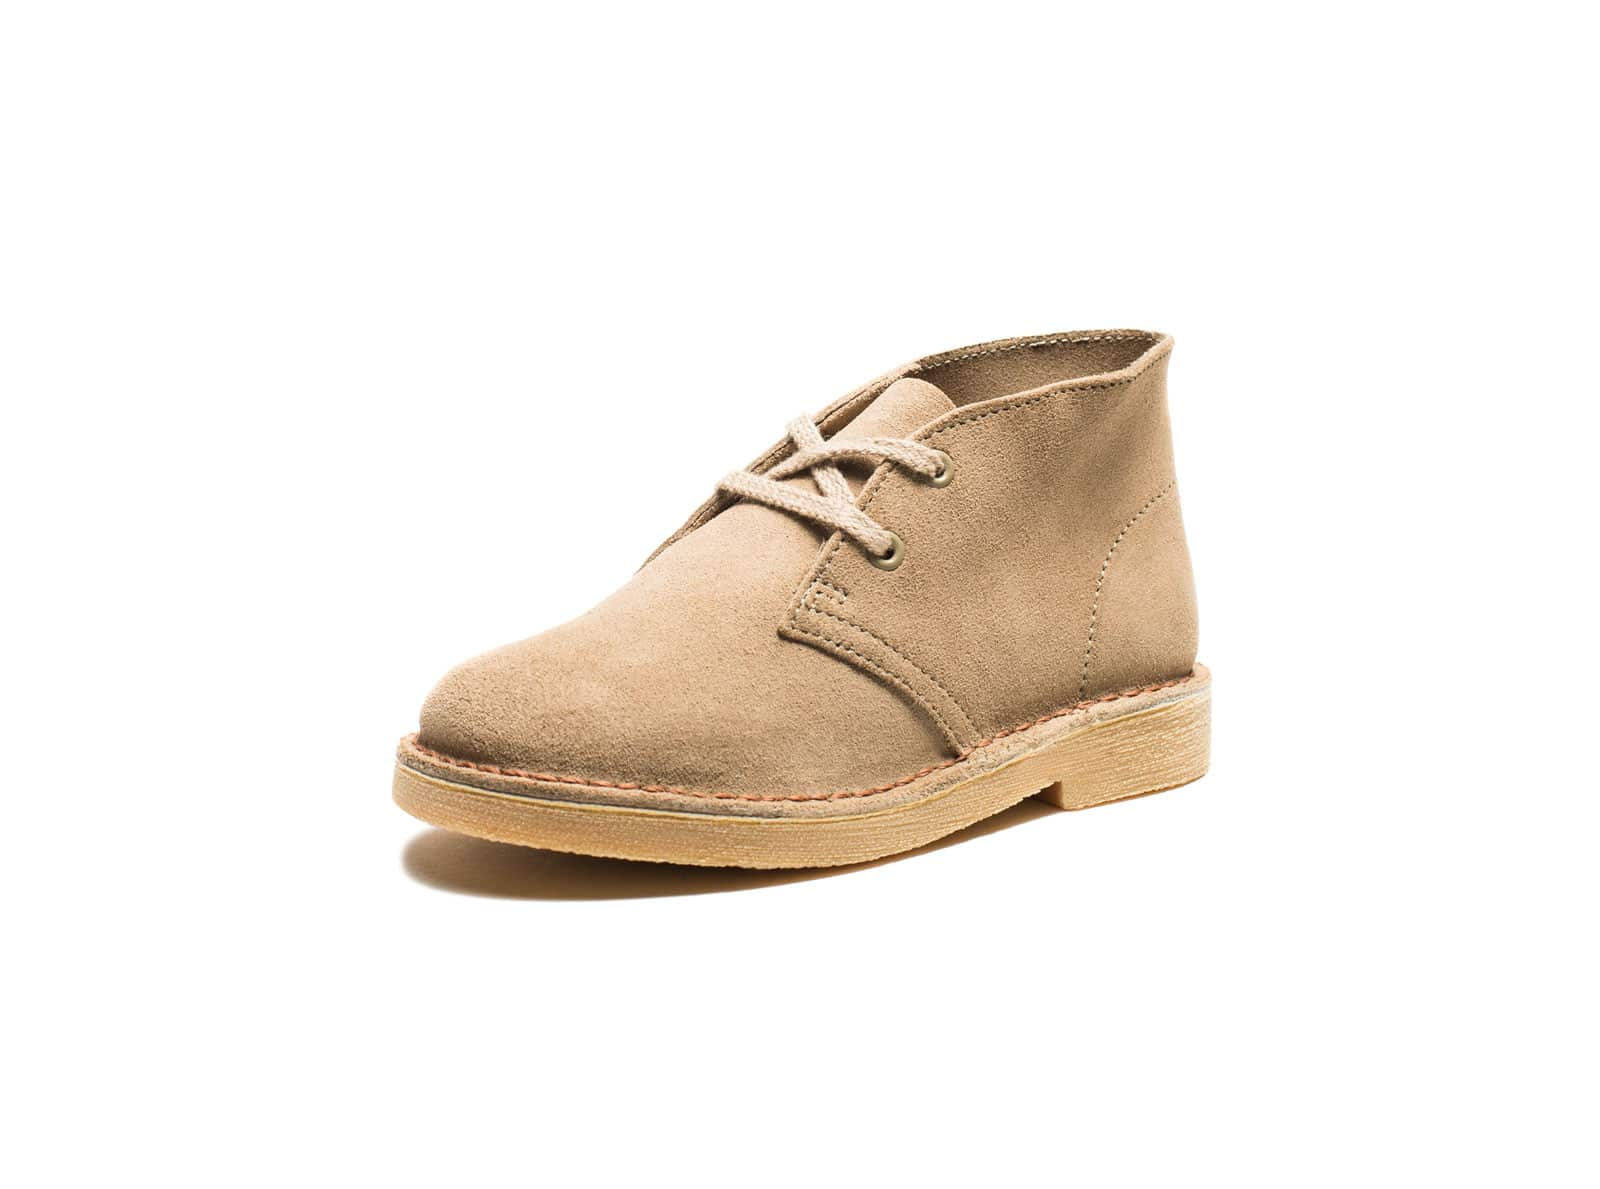 TD/PS DESERT BOOT (SAND SUEDE)